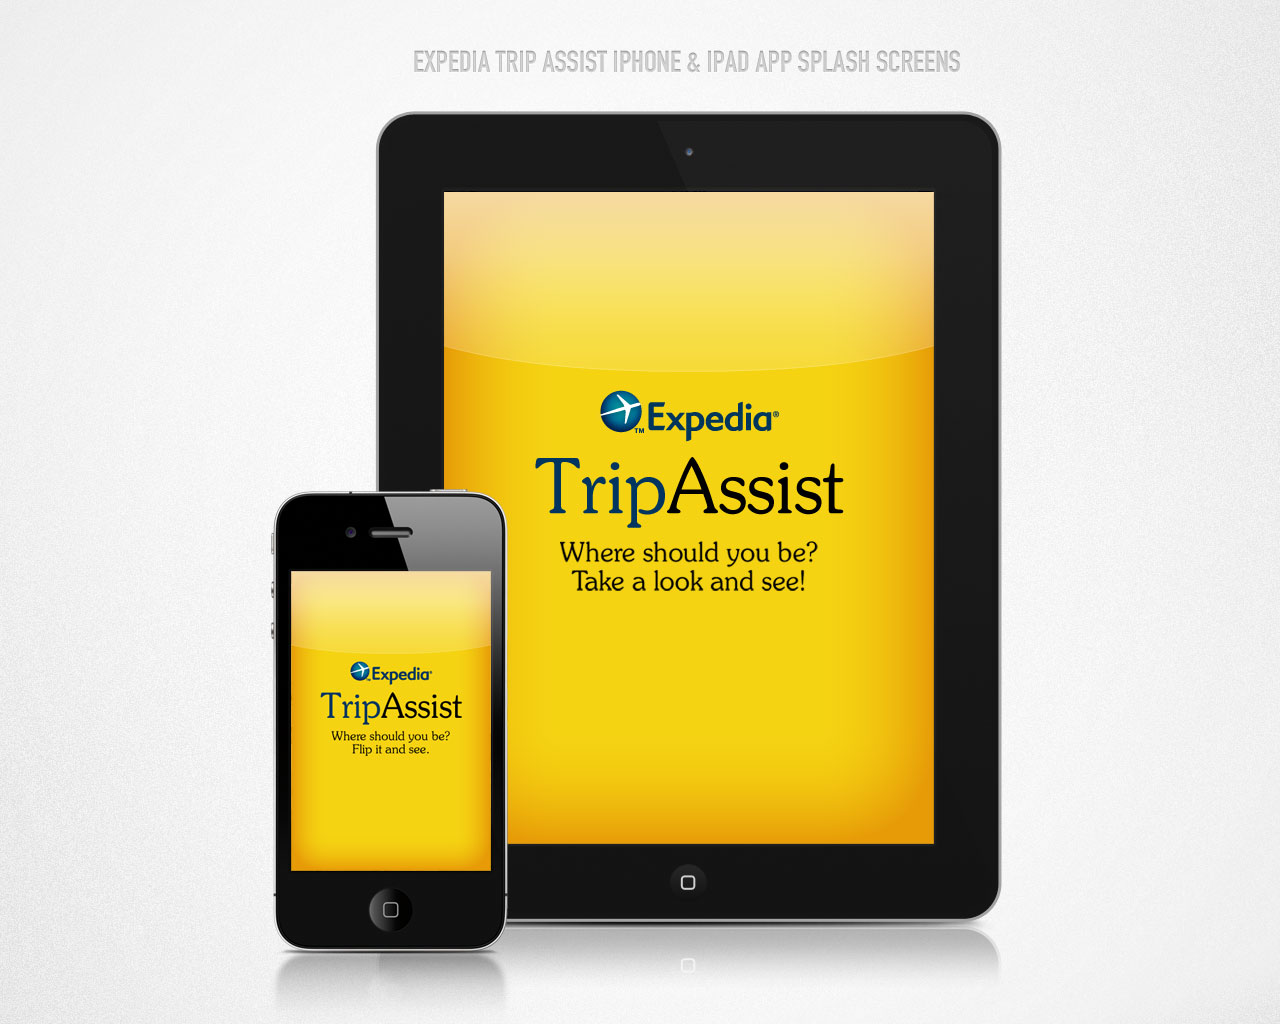 expedia_tripassist_splash